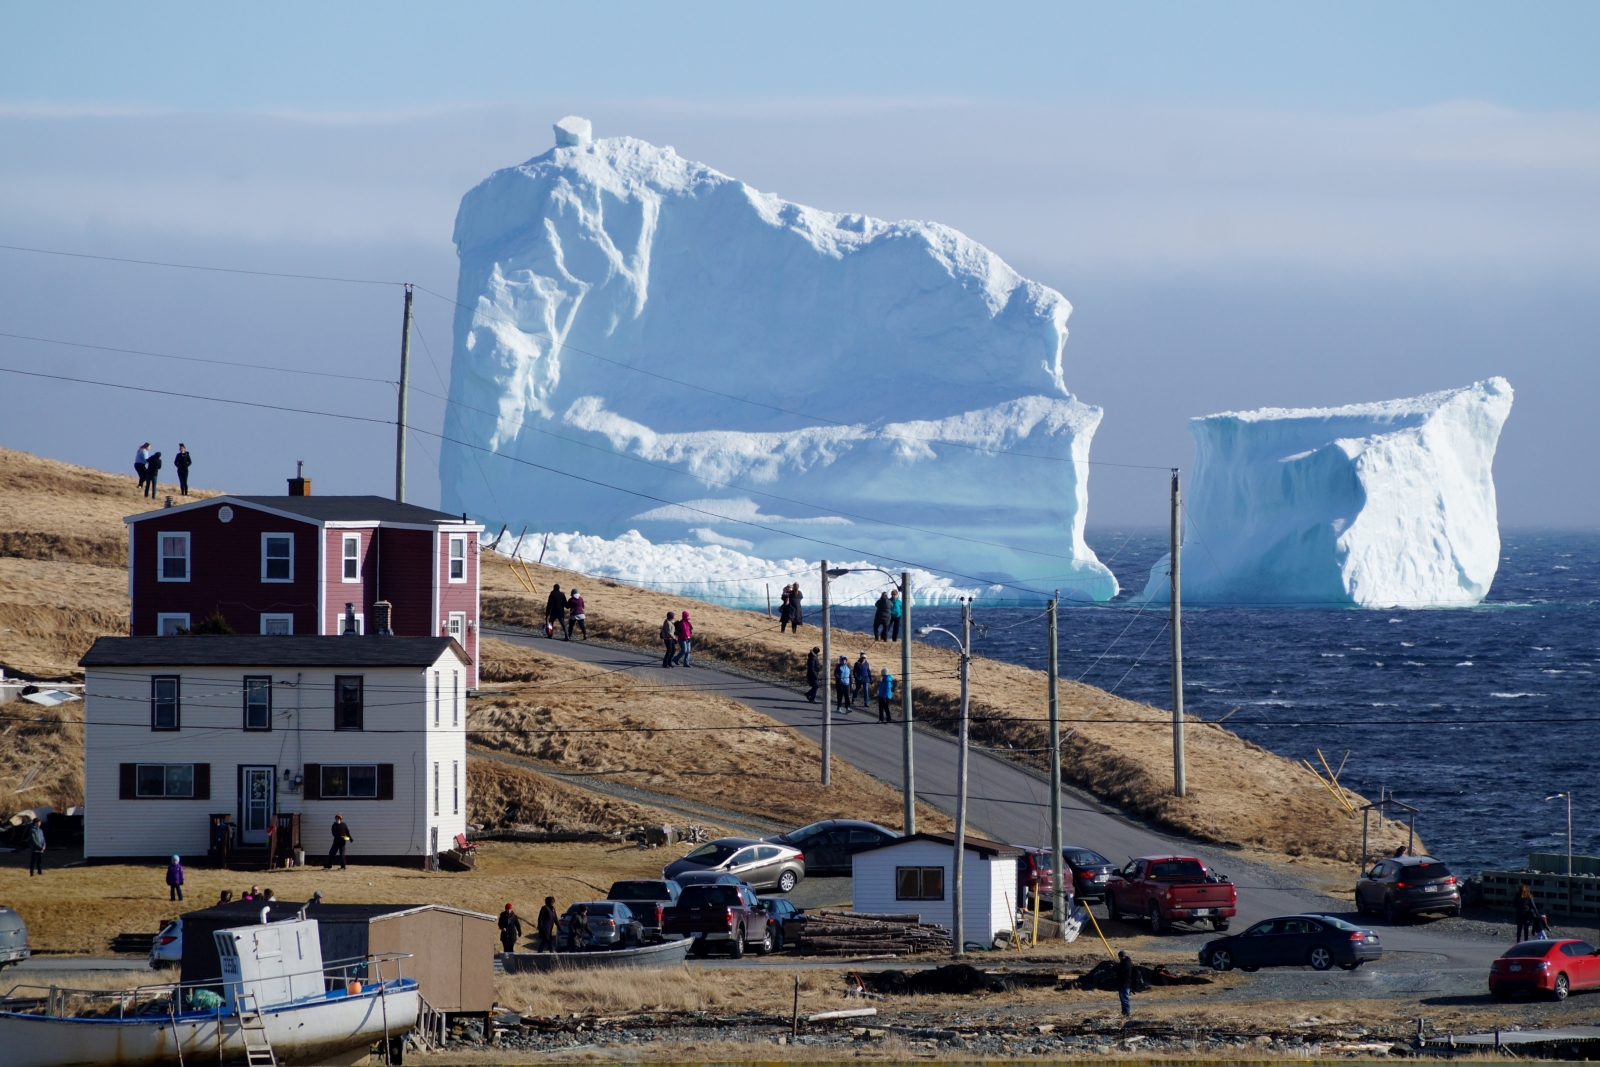 https://d.ibtimes.co.uk/en/full/1607401/iceberg-newfoundland.jpg